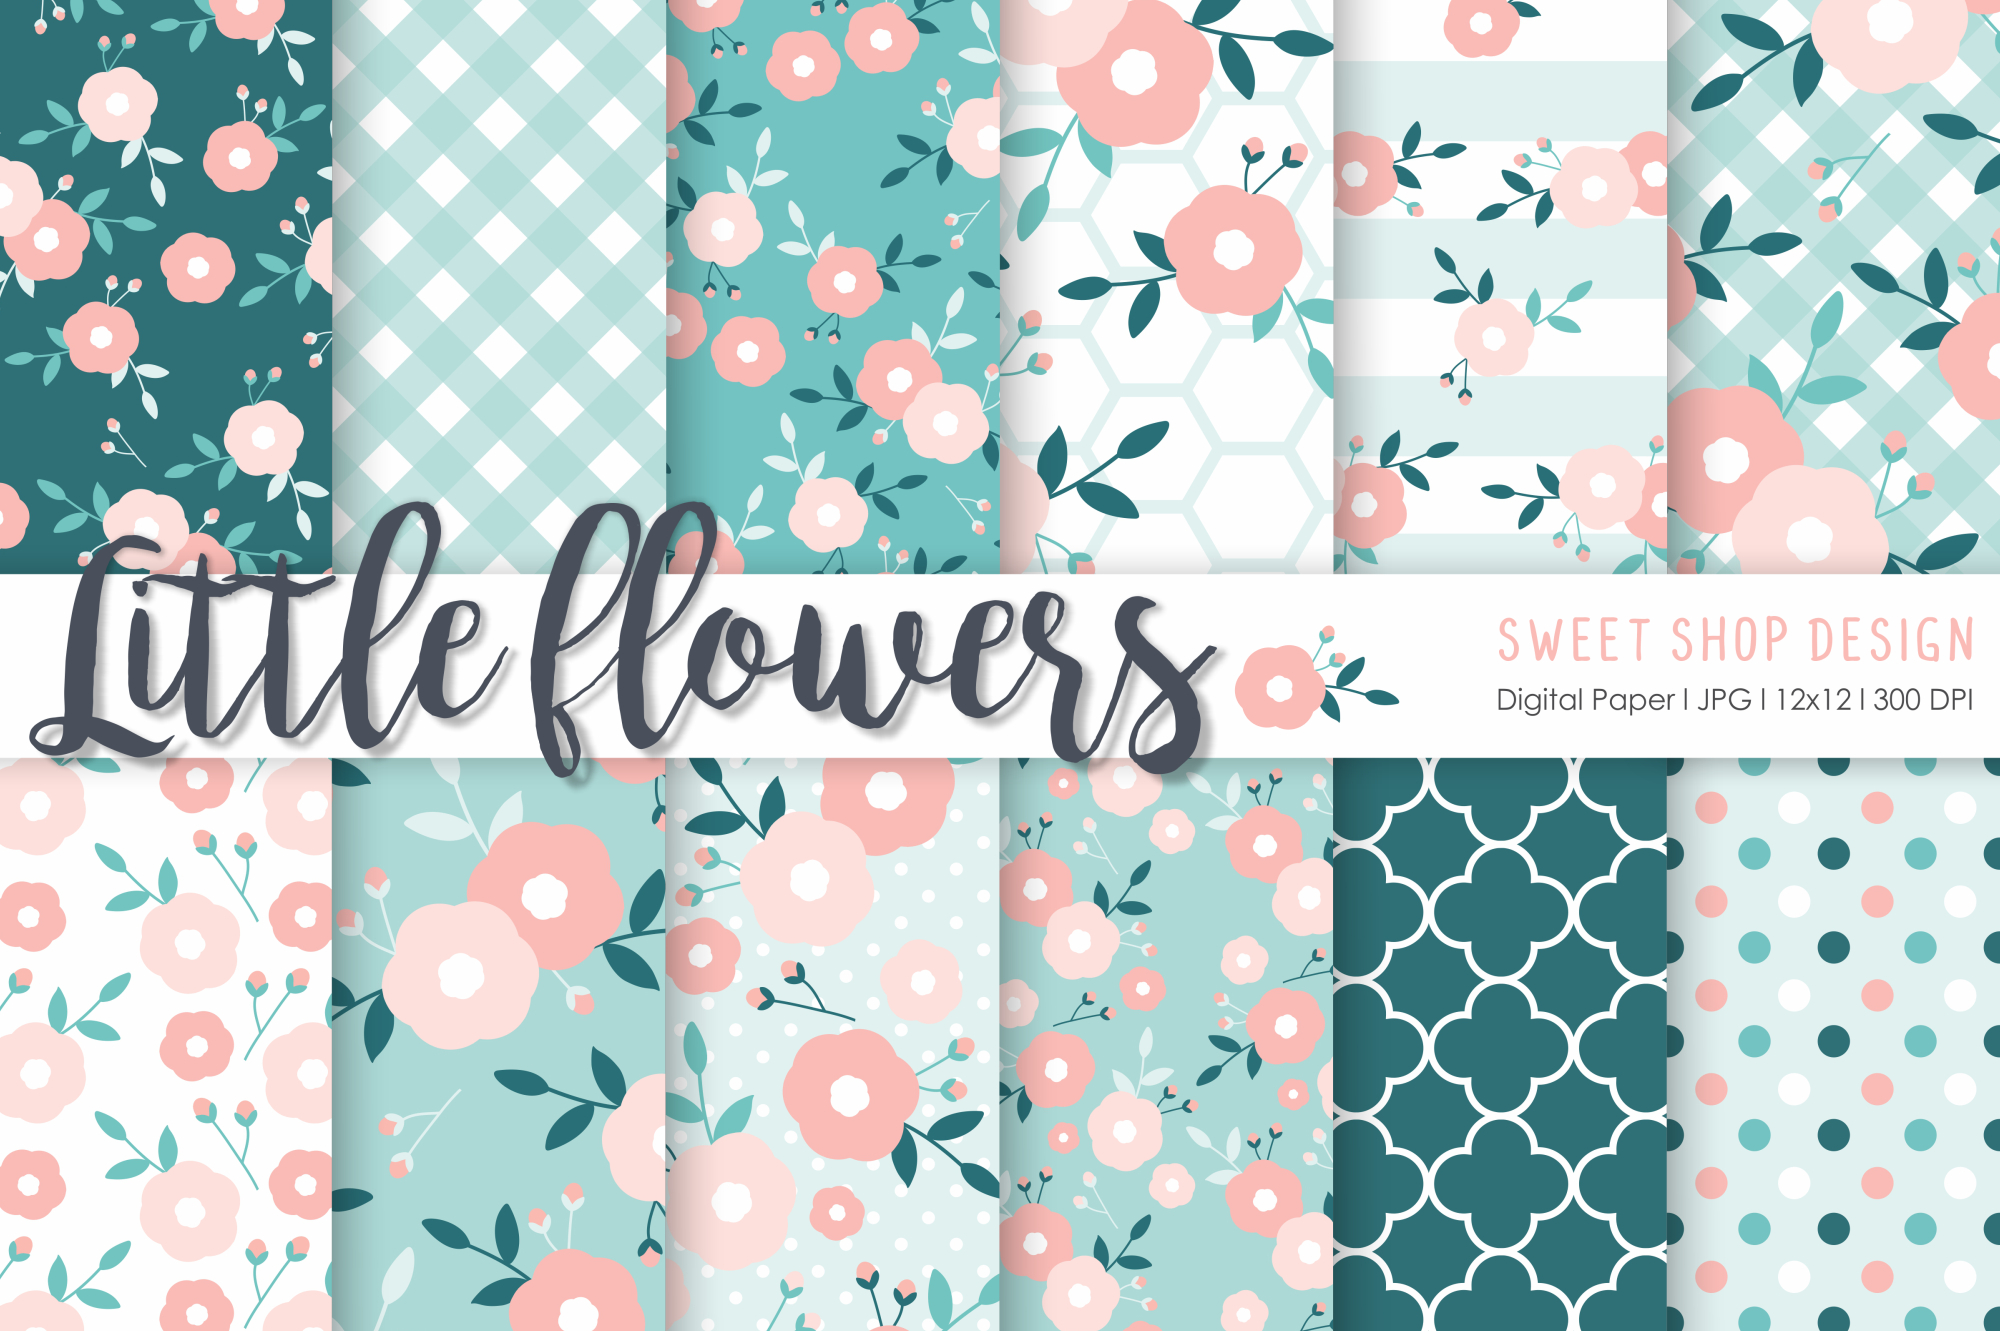 Download Free Digital Paper Little Flowers Graphic By Sweet Shop Design for Cricut Explore, Silhouette and other cutting machines.